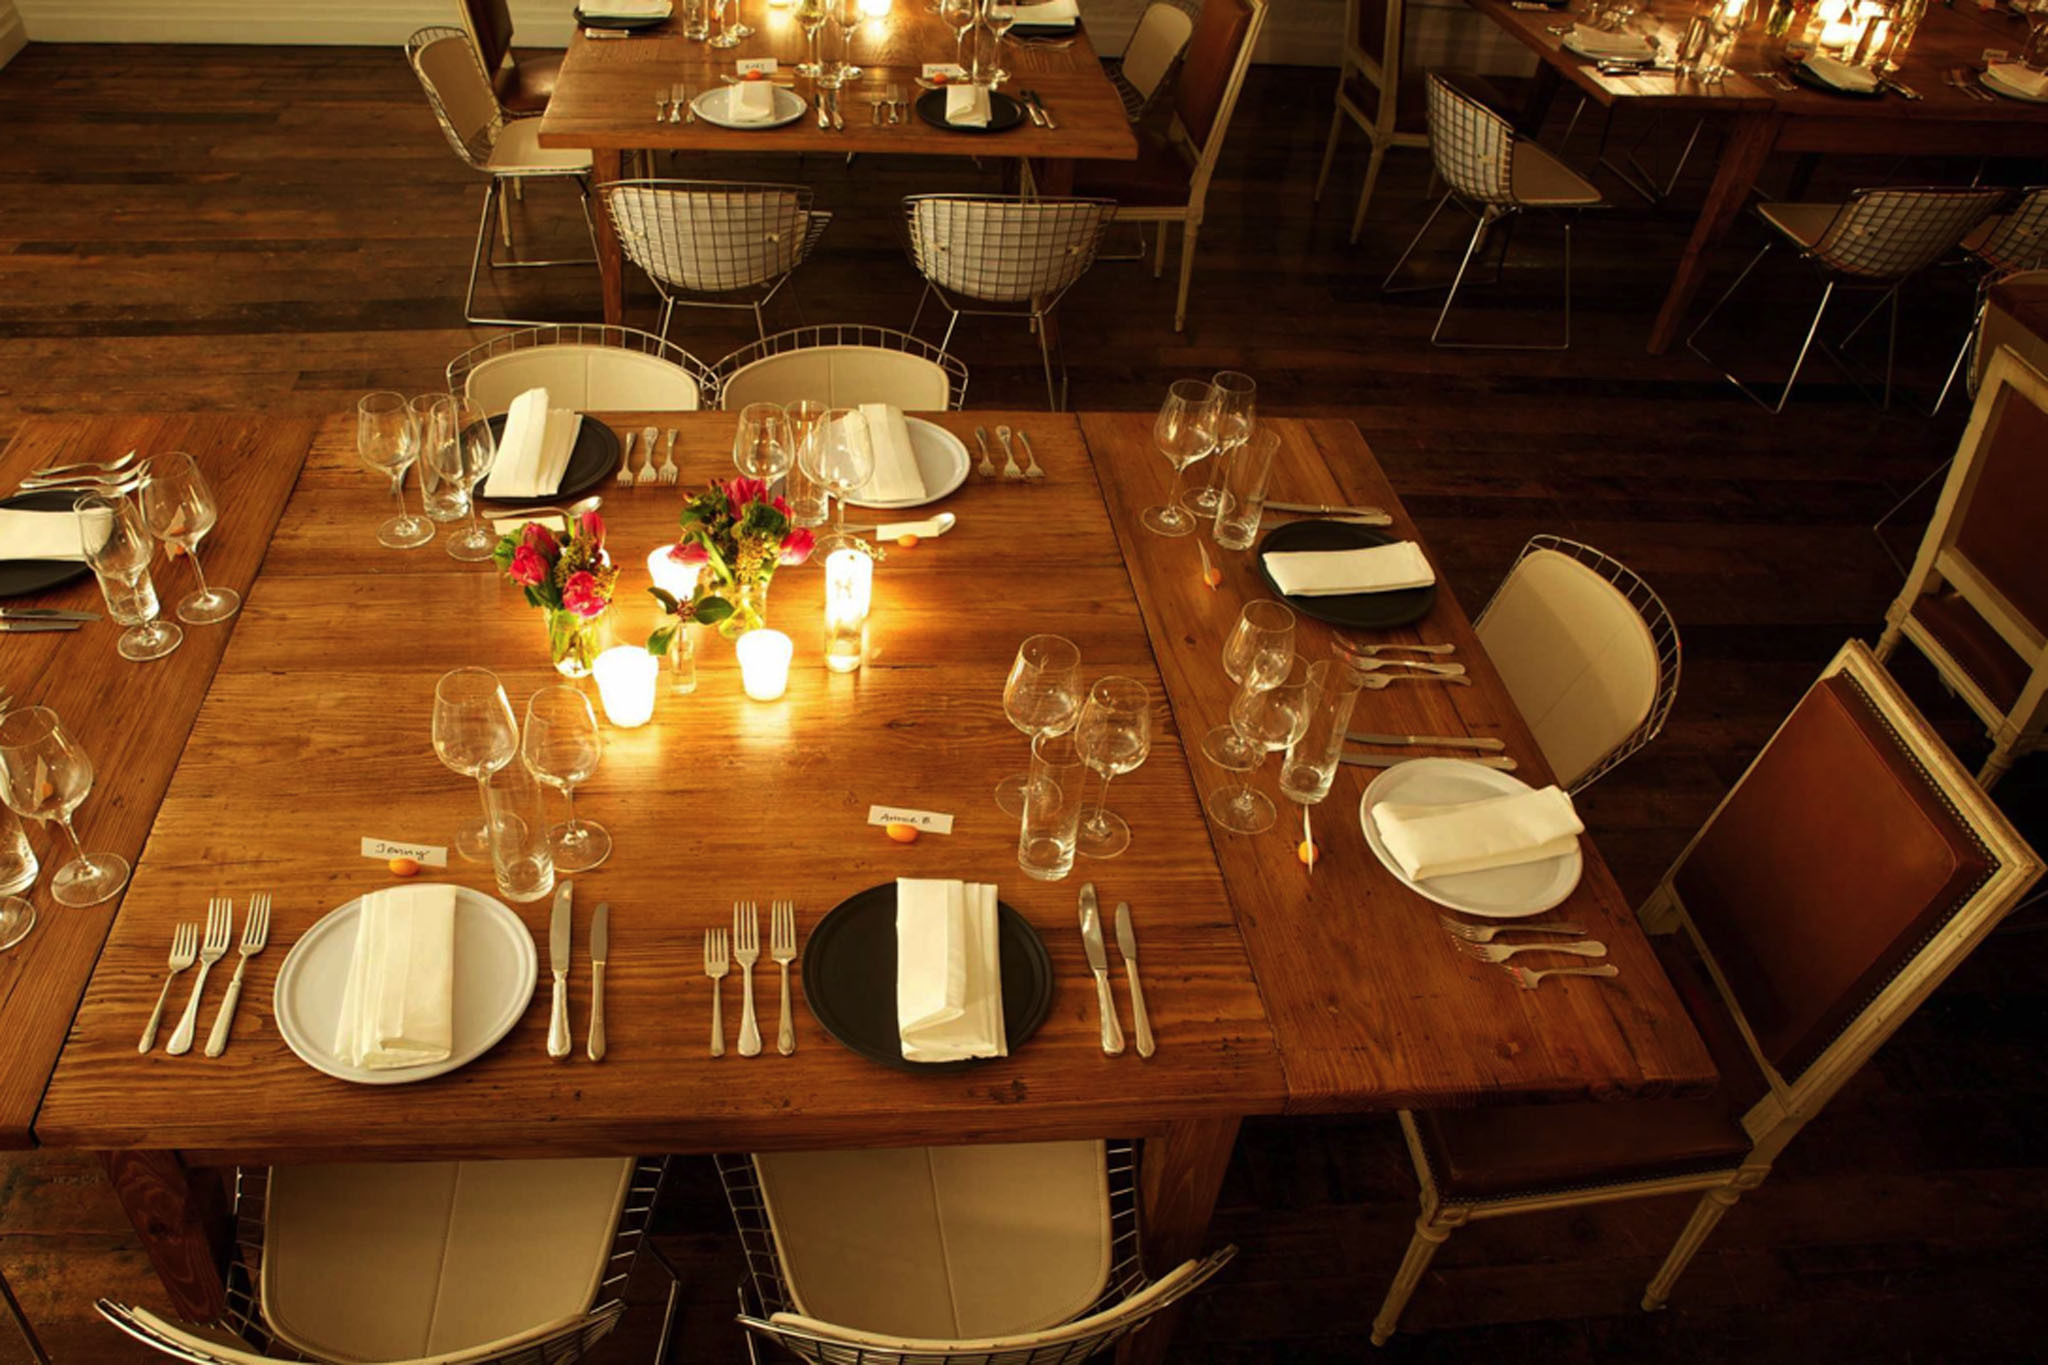 Anniversary date ideas in nyc for a romantic dinner or fun event havens kitchen negle